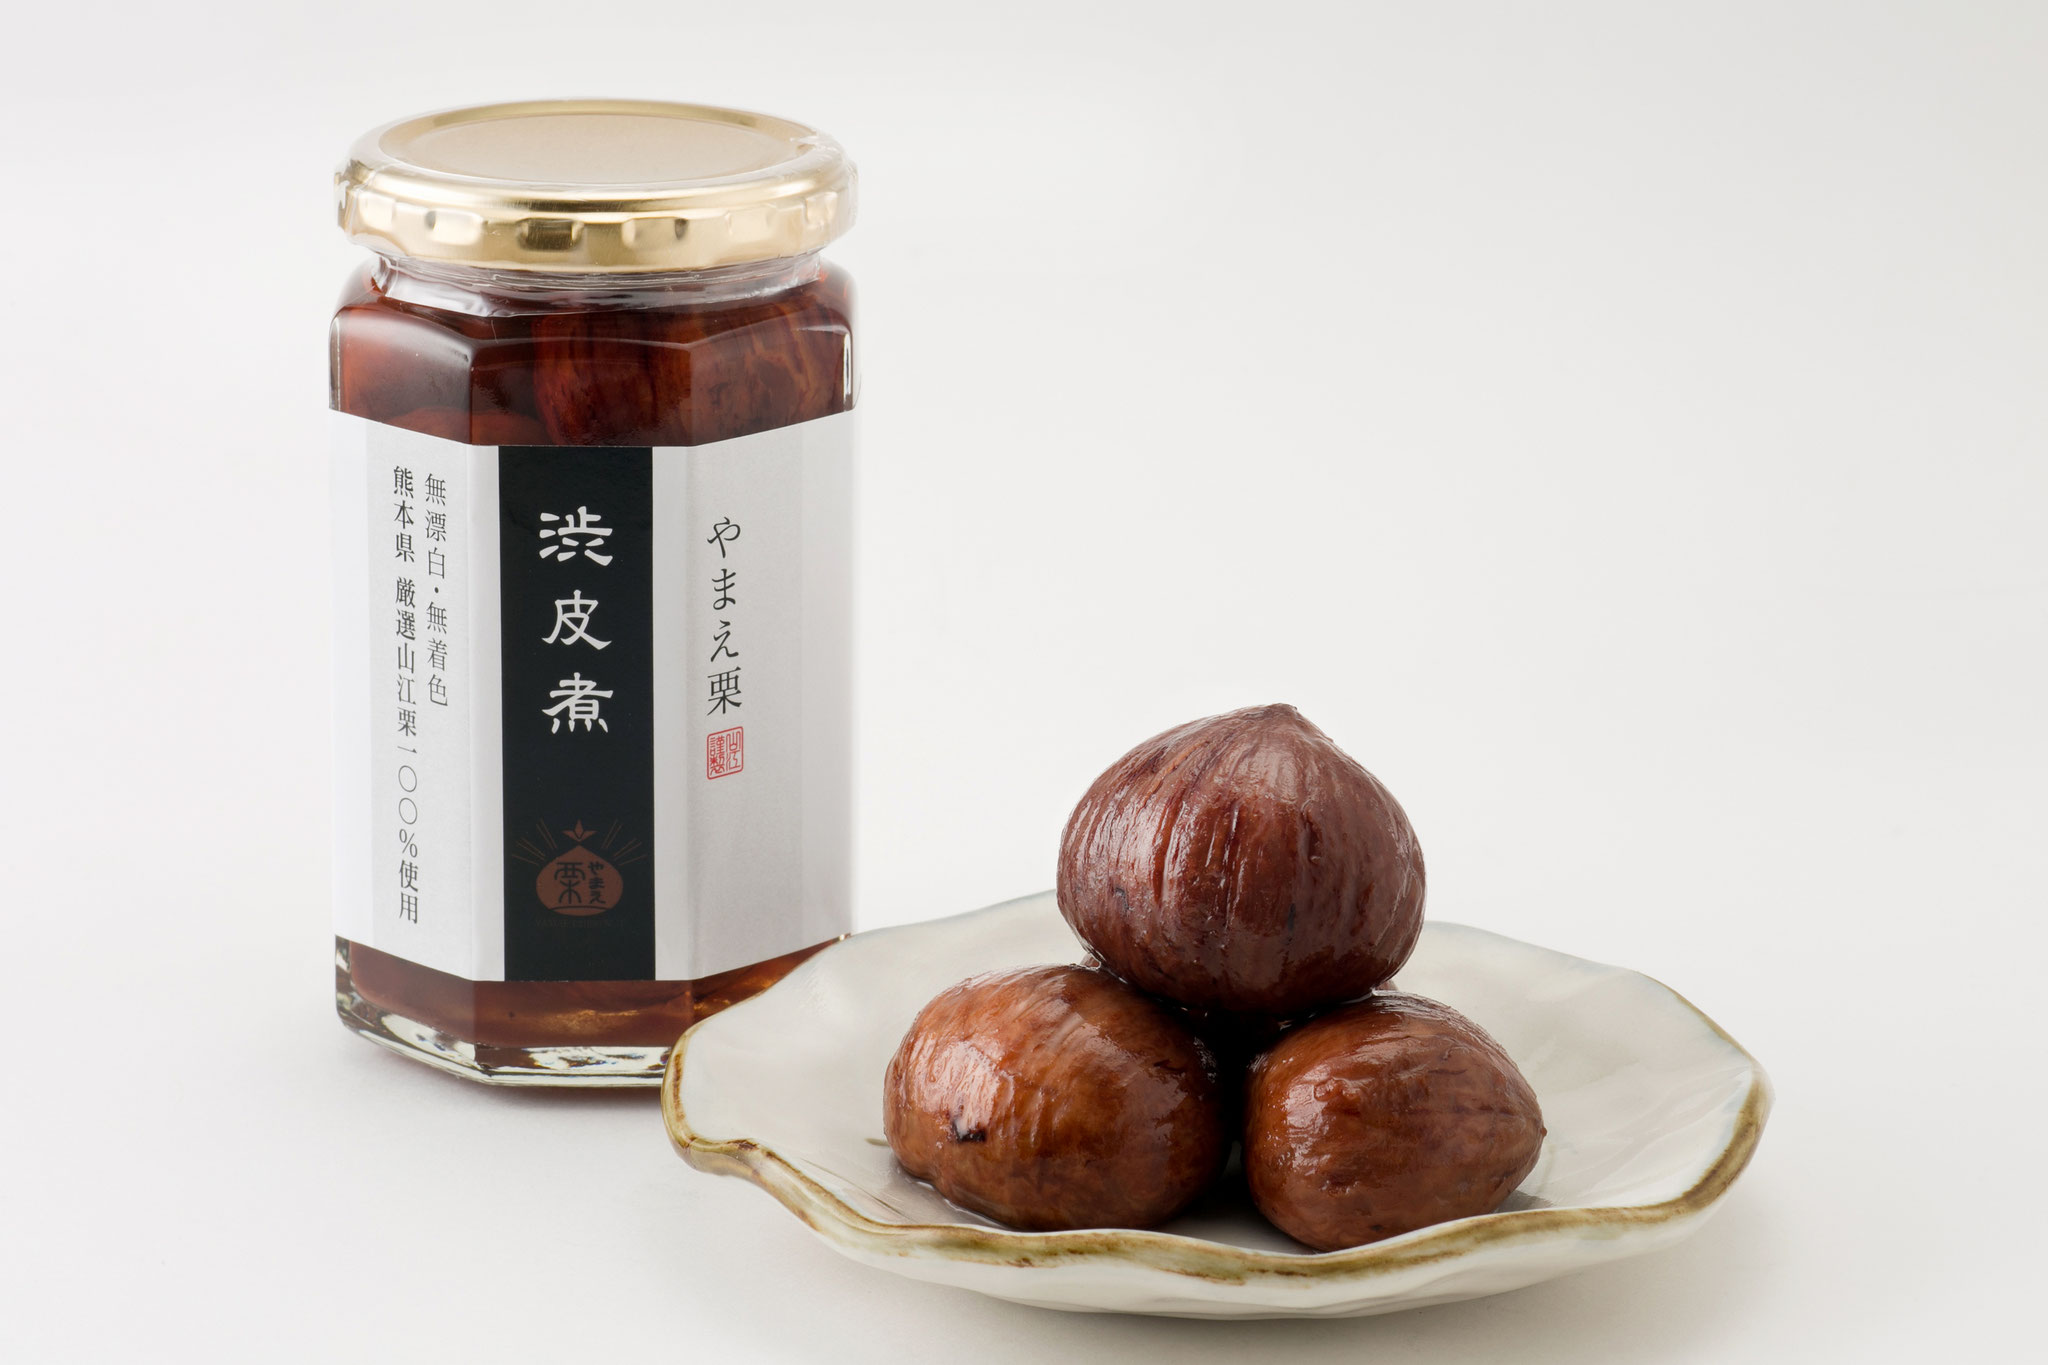 Fully boiled chestnuts (Standard)